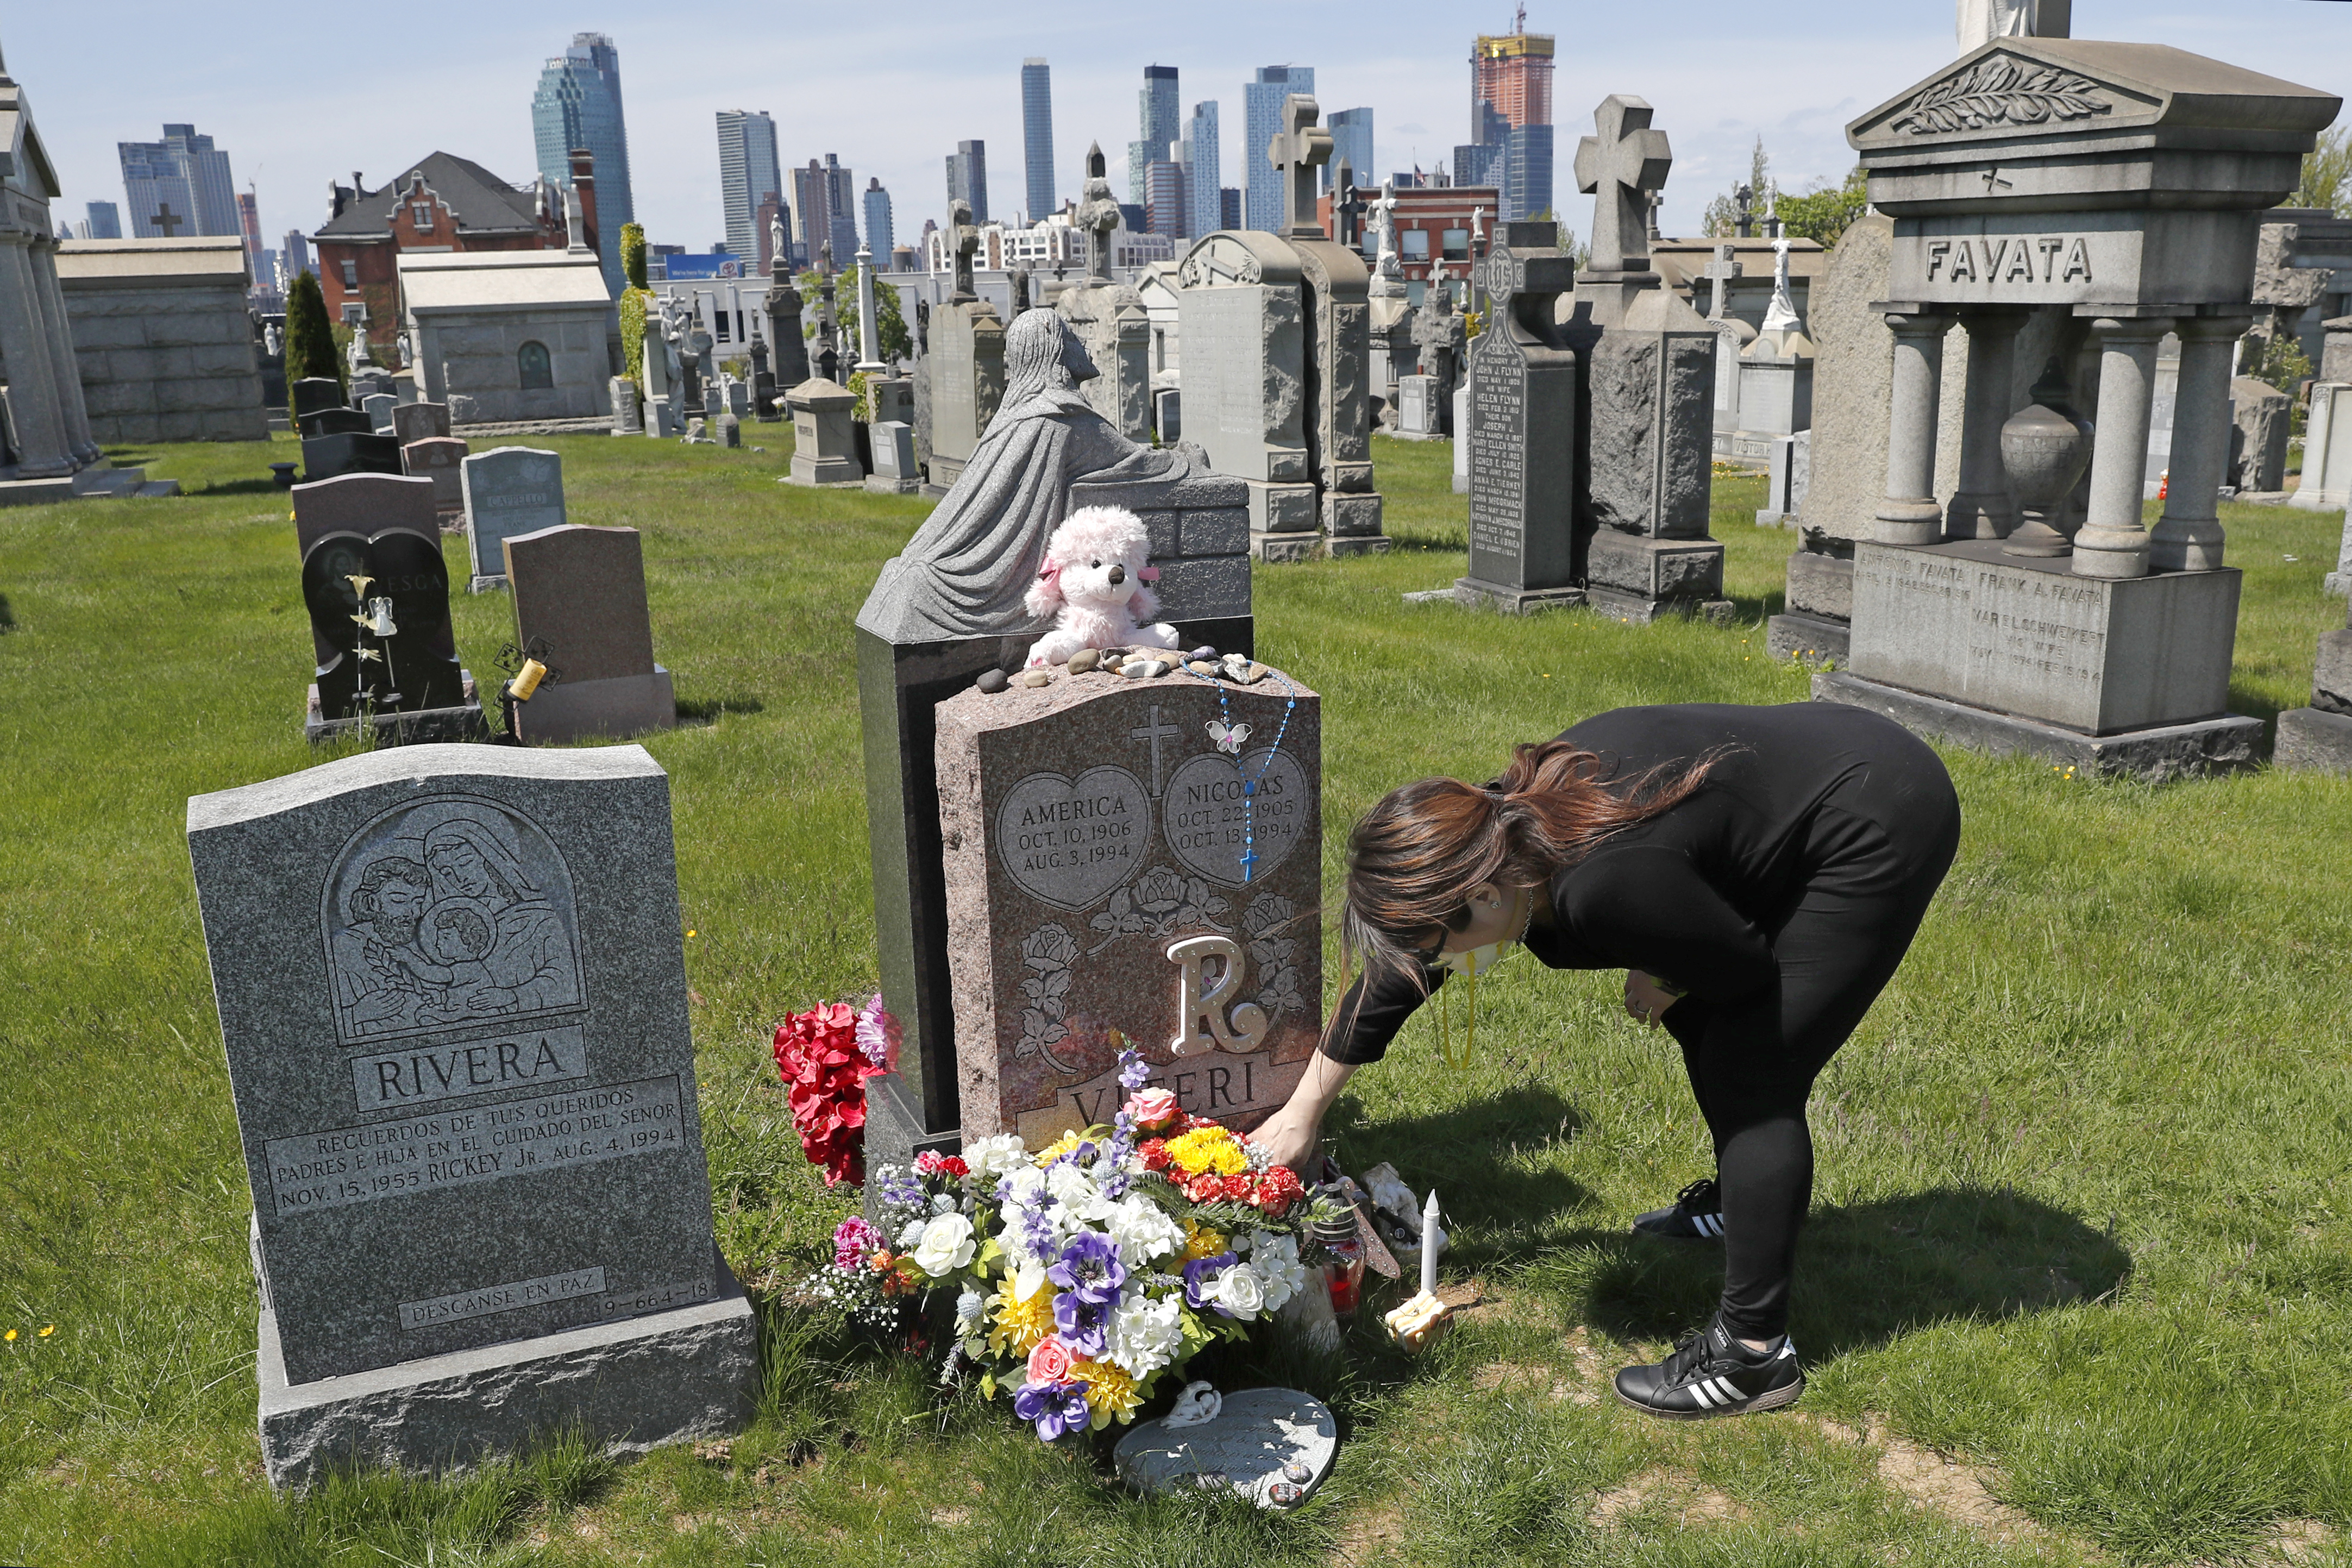 In this Sunday, May 10, 2020 file photo, Sharon Rivera adjusts flowers and other items left at the grave of her daughter, Victoria, at Calvary Cemetery in New York, on Mother's Day. Victoria died of a drug overdose in Sept. 22, 2019, when she just 21 years old.